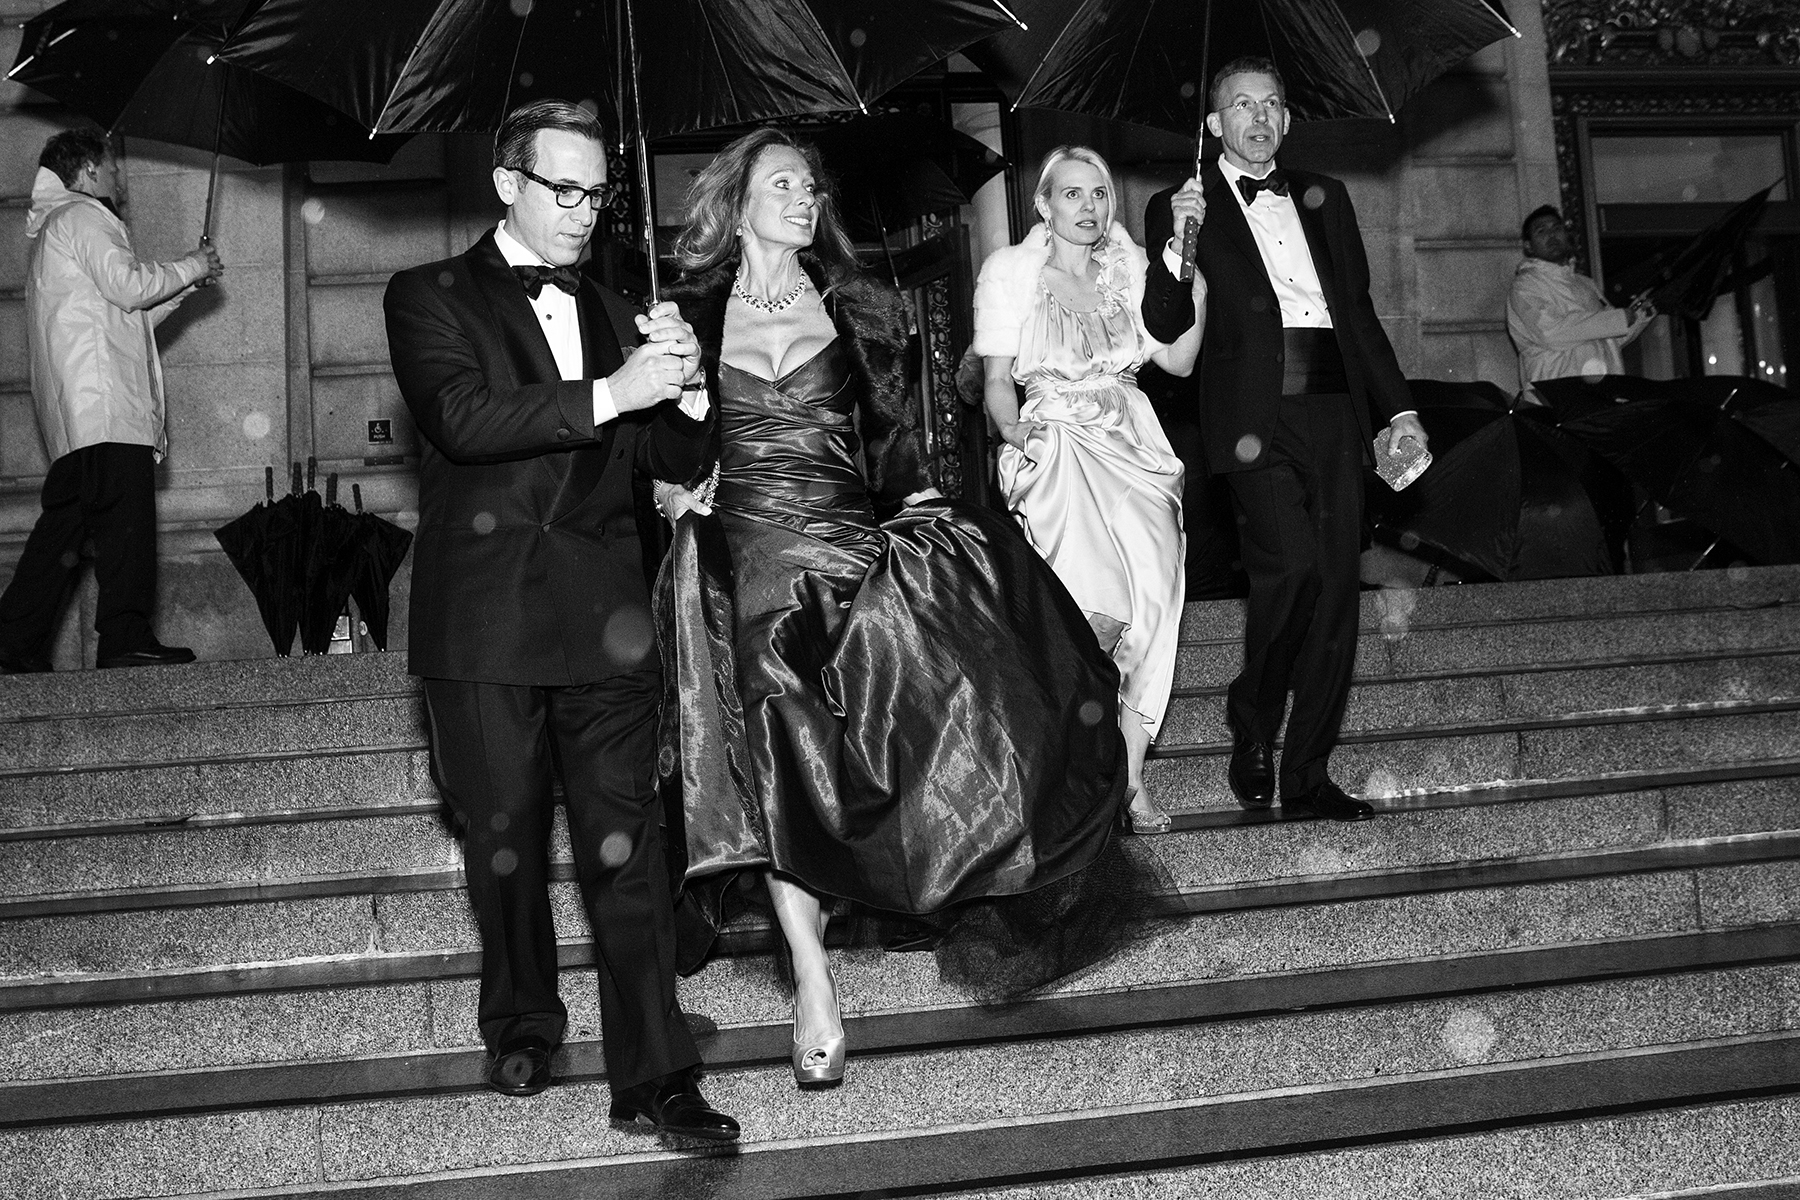 Alan Malouf (left) helps his friend Elisabeth Thieriot keep her gown dry while moving from dinner to the performance during a rainstorm at the San Francisco Ballet Opening Night Gala in San Francisco, Calif., on Thursday, January 19, 2012.This photograph is of a candid moment and was not directed in any way.